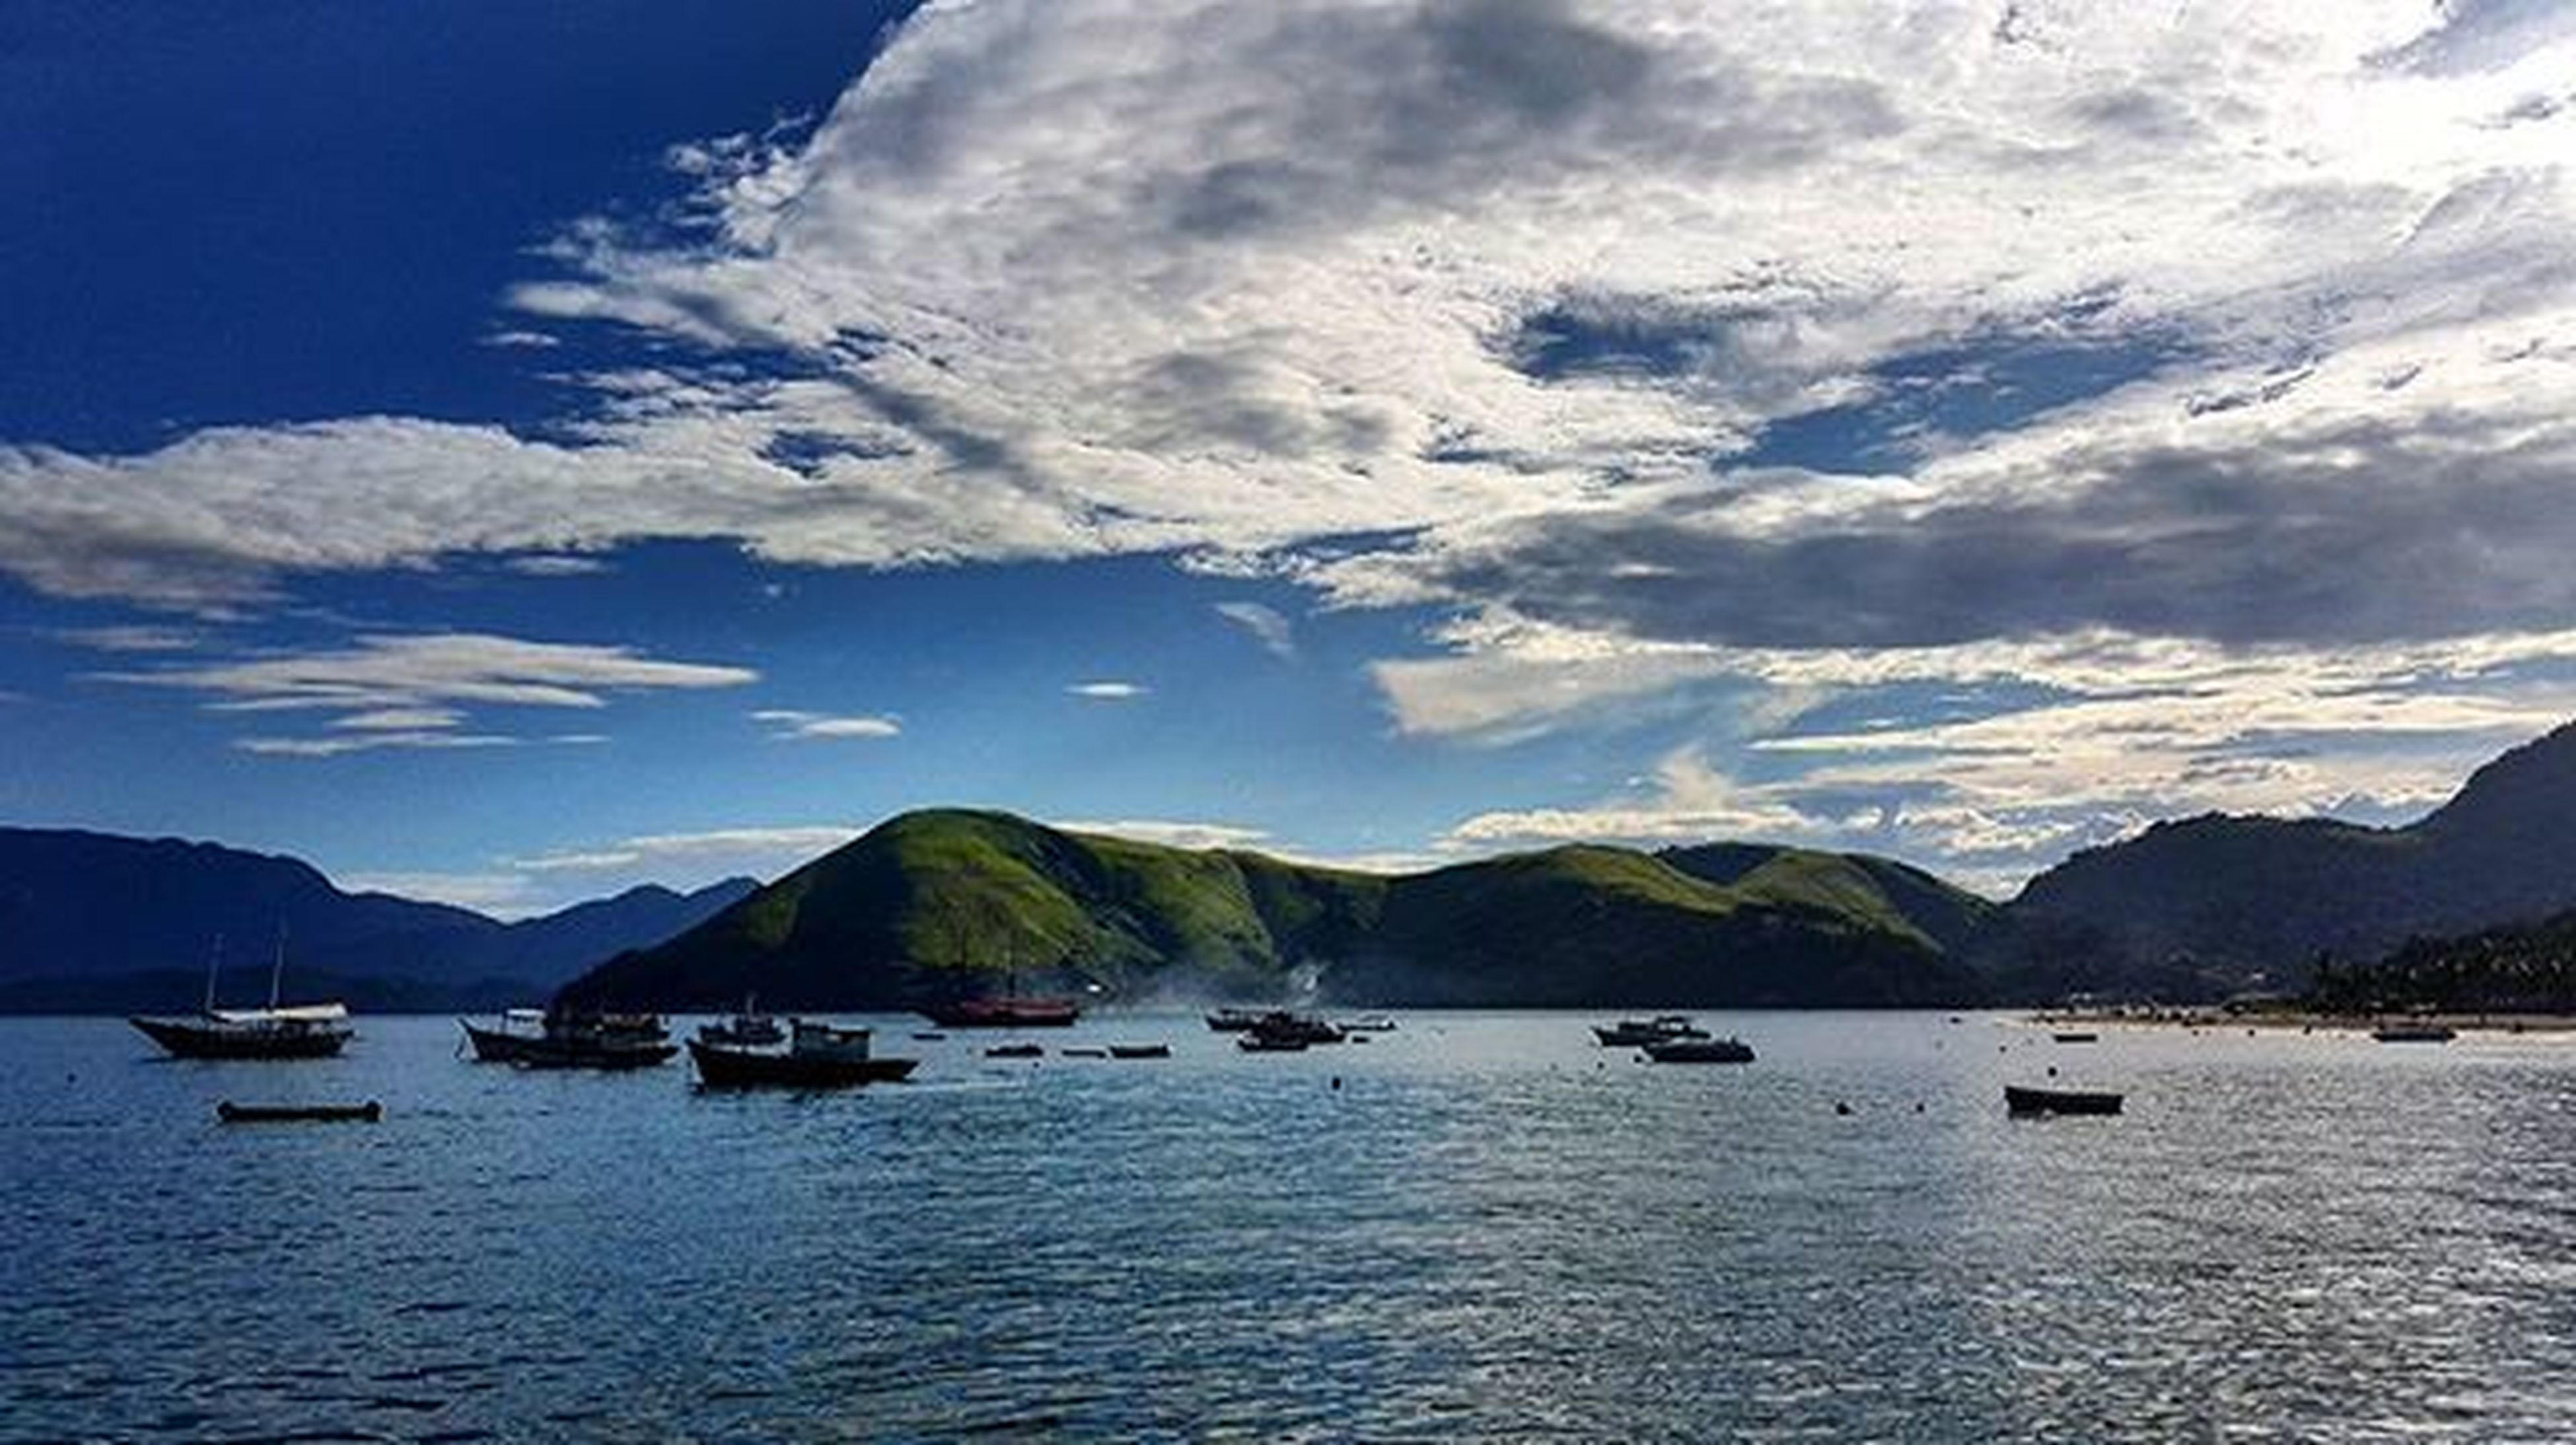 mountain, nautical vessel, water, transportation, mountain range, boat, mode of transport, sky, waterfront, scenics, sea, tranquil scene, tranquility, beauty in nature, cloud - sky, nature, cloud, moored, lake, cloudy